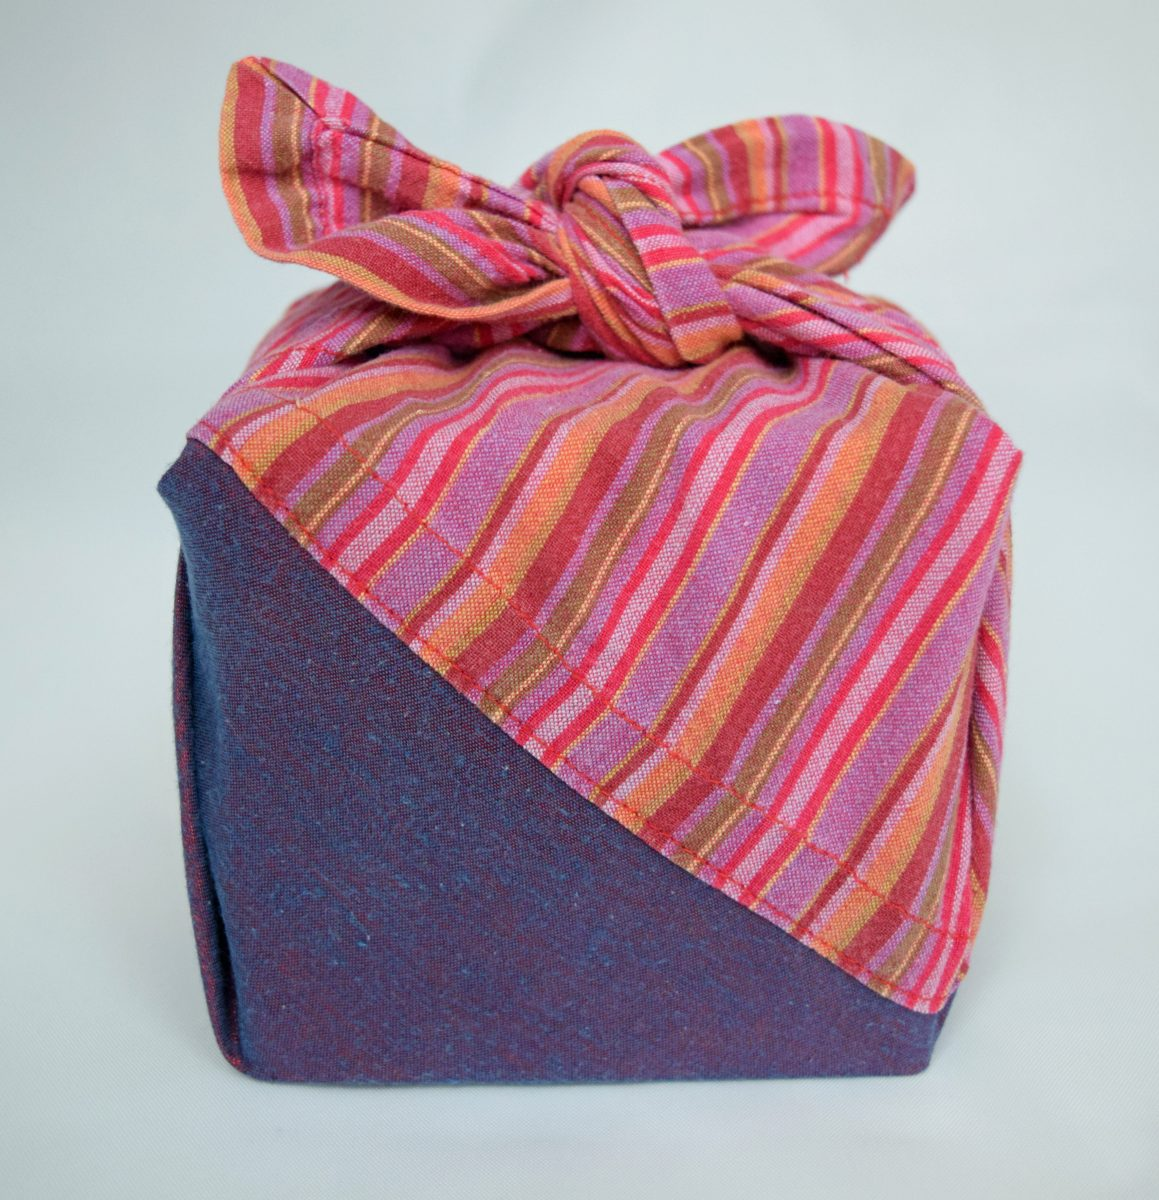 Unique Gift Wrapping Ideas That Are Part of the Gift | Mindful Momma